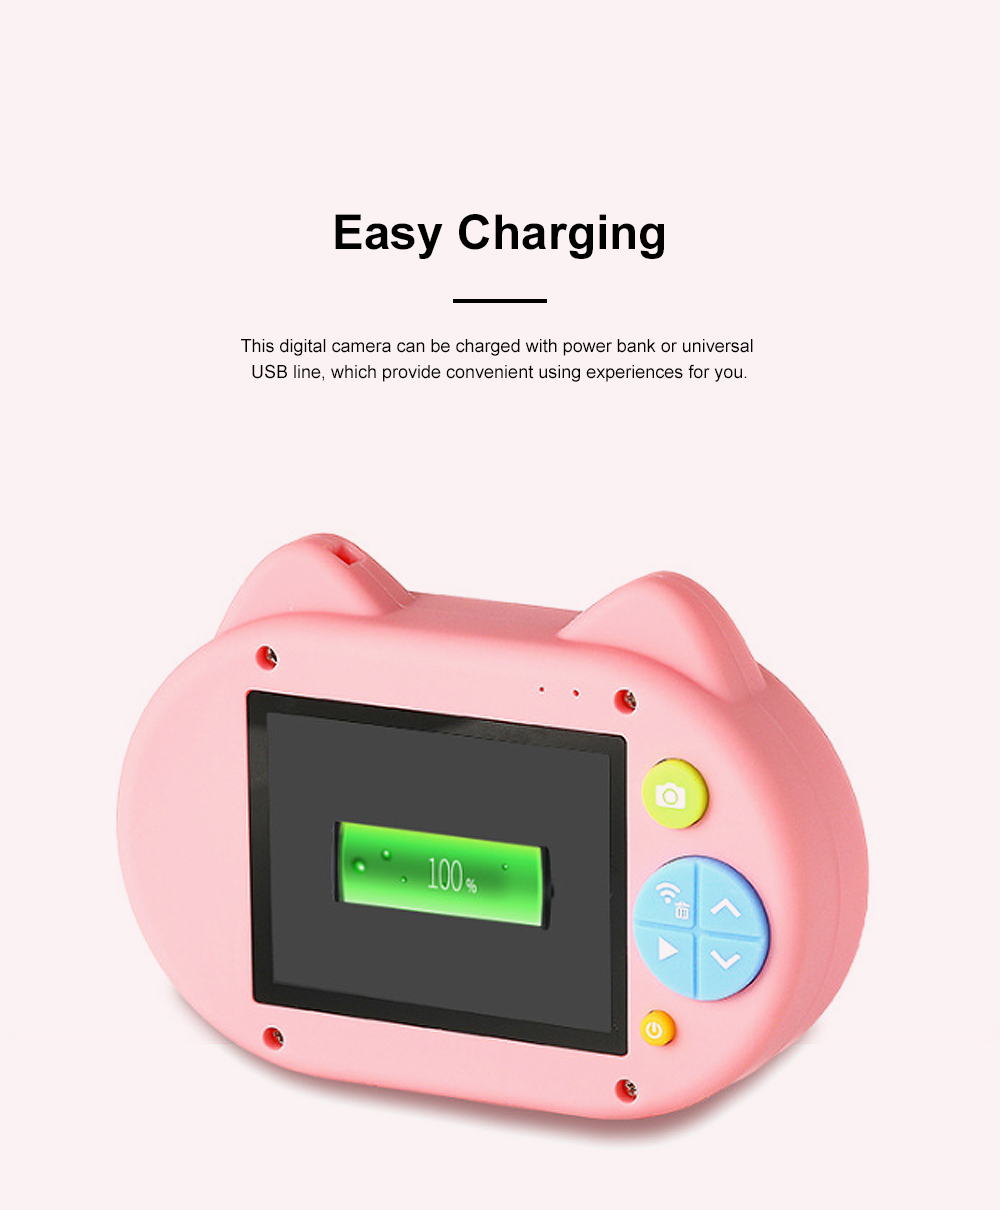 Cute Animal Model Mini Digital Camera for Children WIth Breaking-proof Silicone Shell 16G 1200W HD Pixel 2.0 inch Video Recorder Birthday Present 7